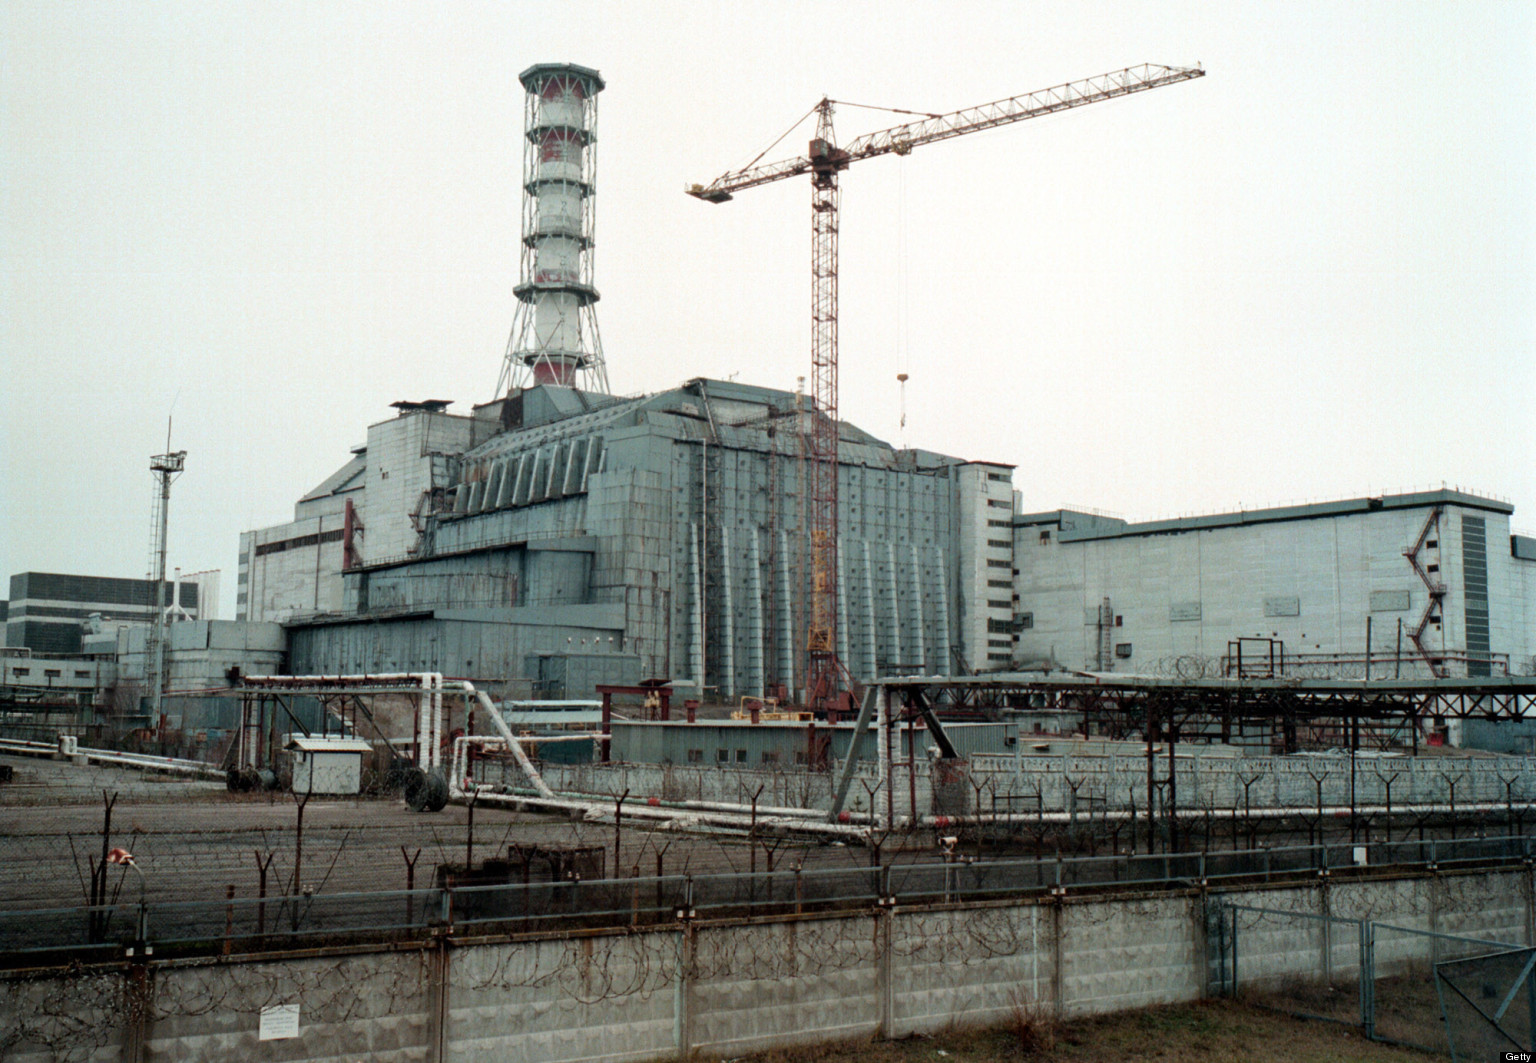 an examination of the impacts of the chernobyl nuclear accident in the united states Nearly one million people around the world died from exposure to radiation released by the 1986 nuclear disaster at the chernobyl reactor the book explores effects of chernobyl fallout that arrived above the united states nine days after the disaster.